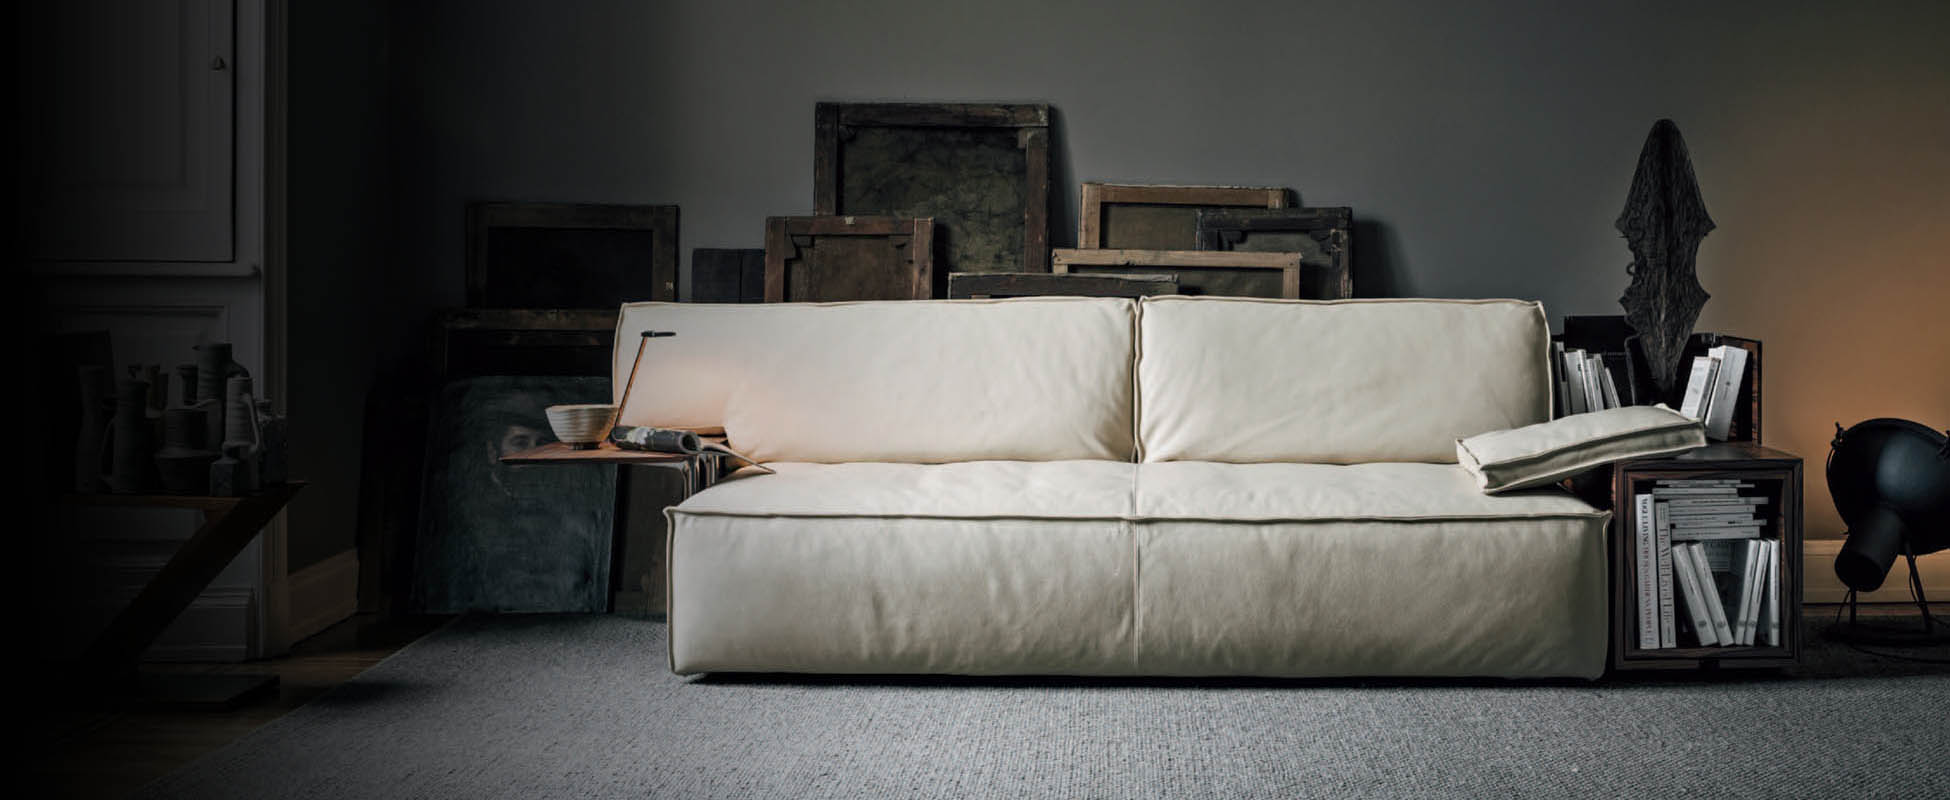 cassina my world bei steidten+ berlin